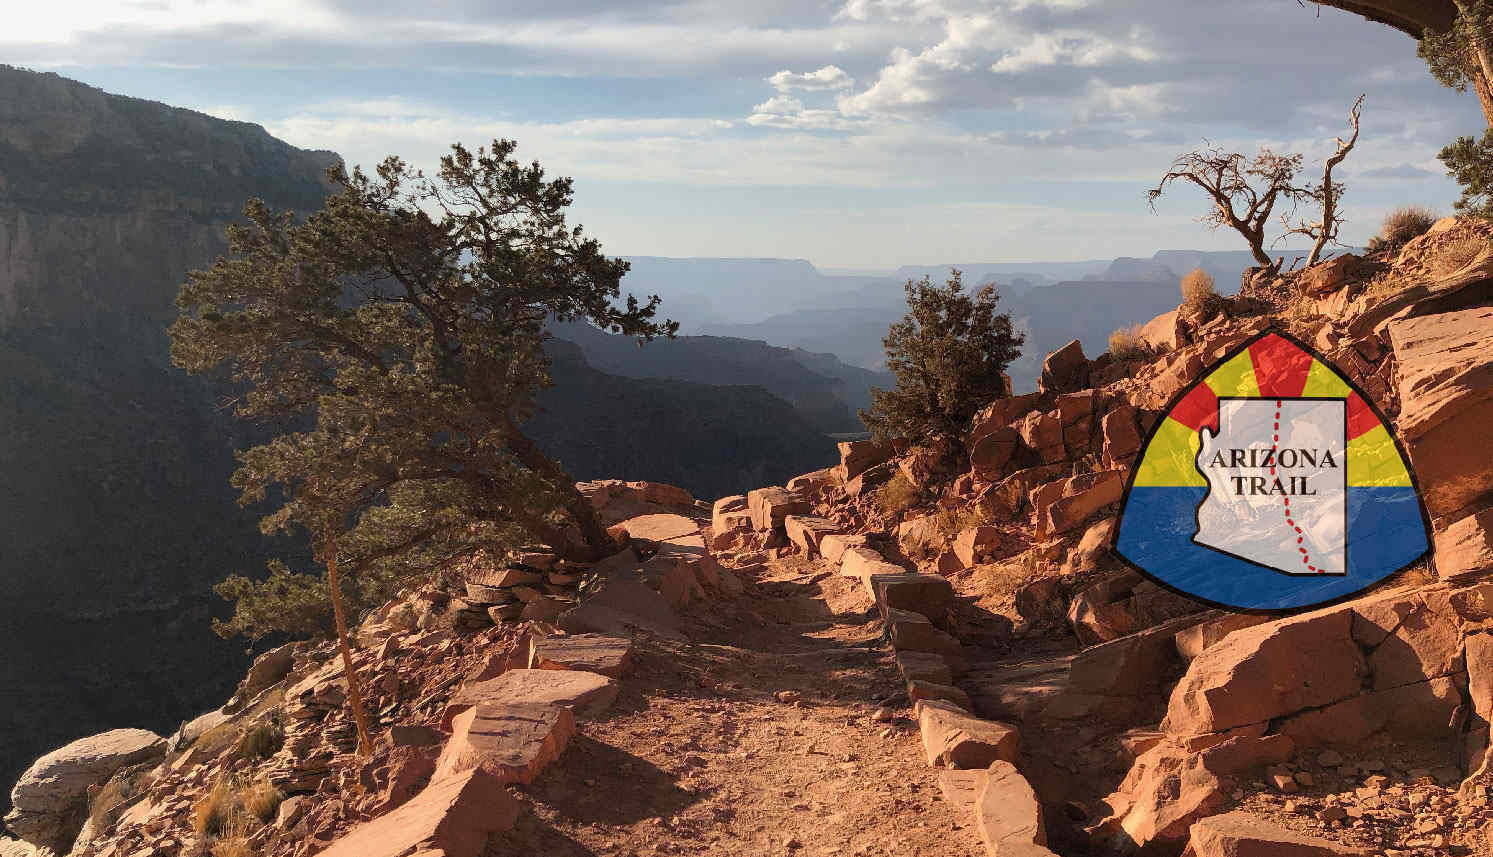 Arizona Trail Resource Cover Photo